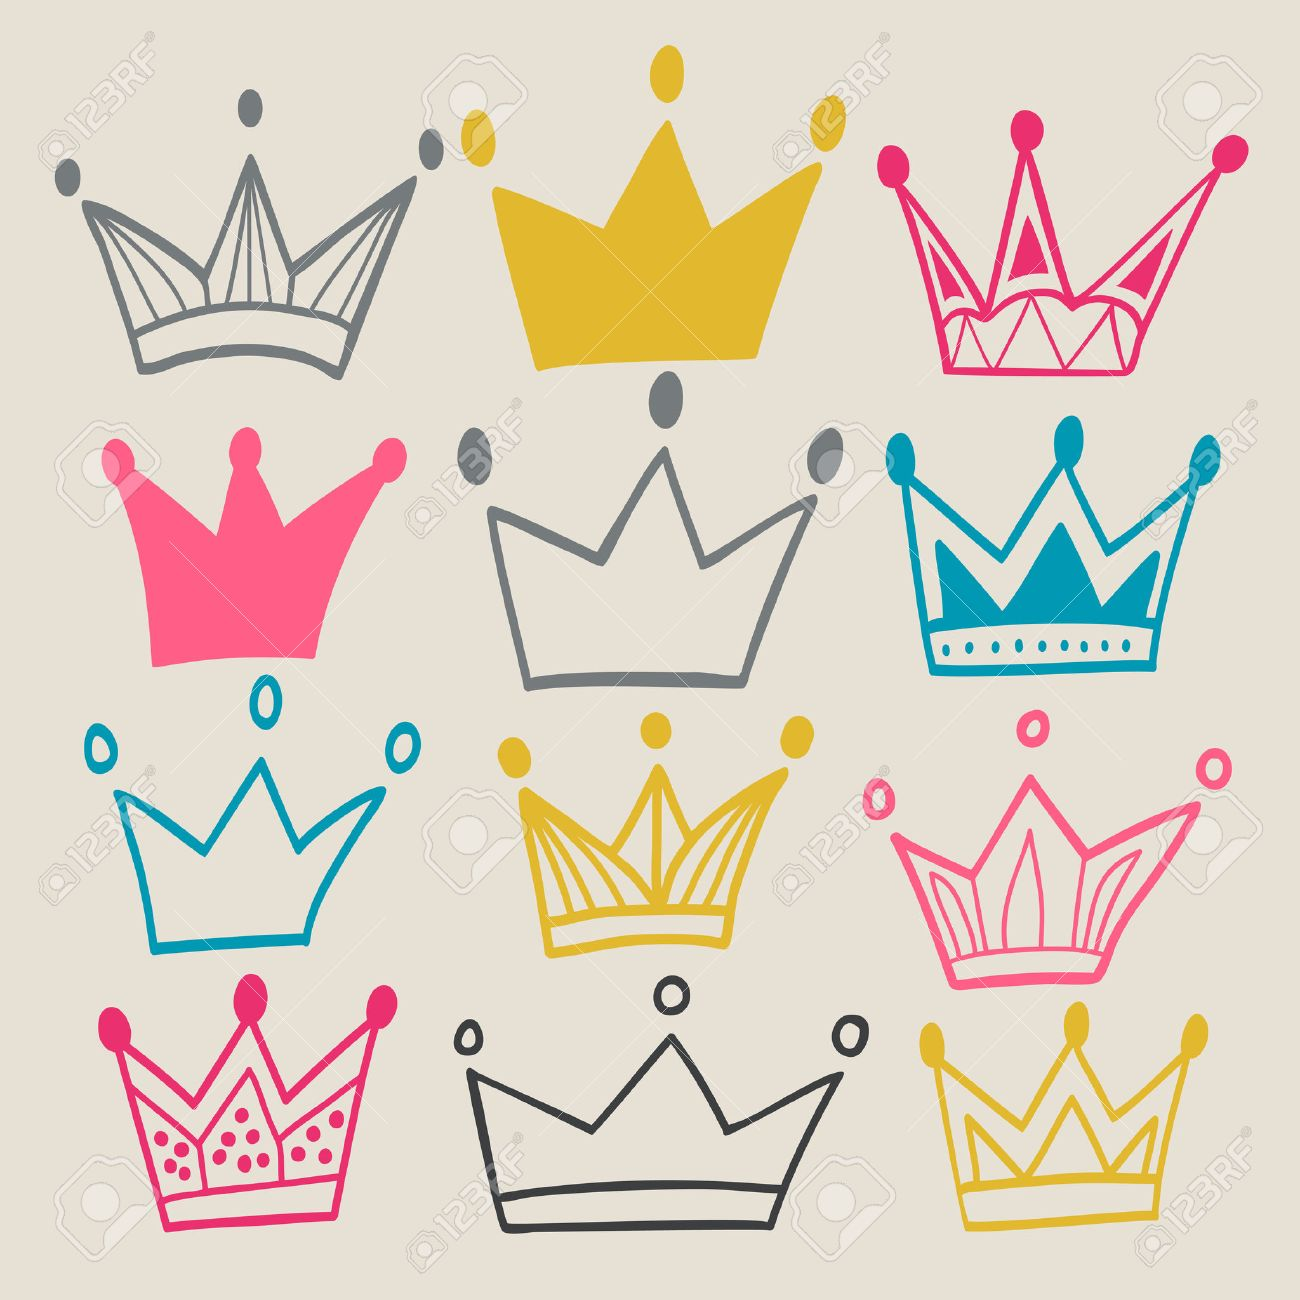 Set Of Cute Cartoon Crowns Pastel Backdrop Bright Colors Used Royalty Free Cliparts Vectors And Stock Illustration Image 35245907 Download 72 crown free 3d models, available in max, obj, fbx, 3ds, c4d file formats, ready for find professional crown 3d models for any 3d design projects like virtual reality (vr), augmented. set of cute cartoon crowns pastel backdrop bright colors used